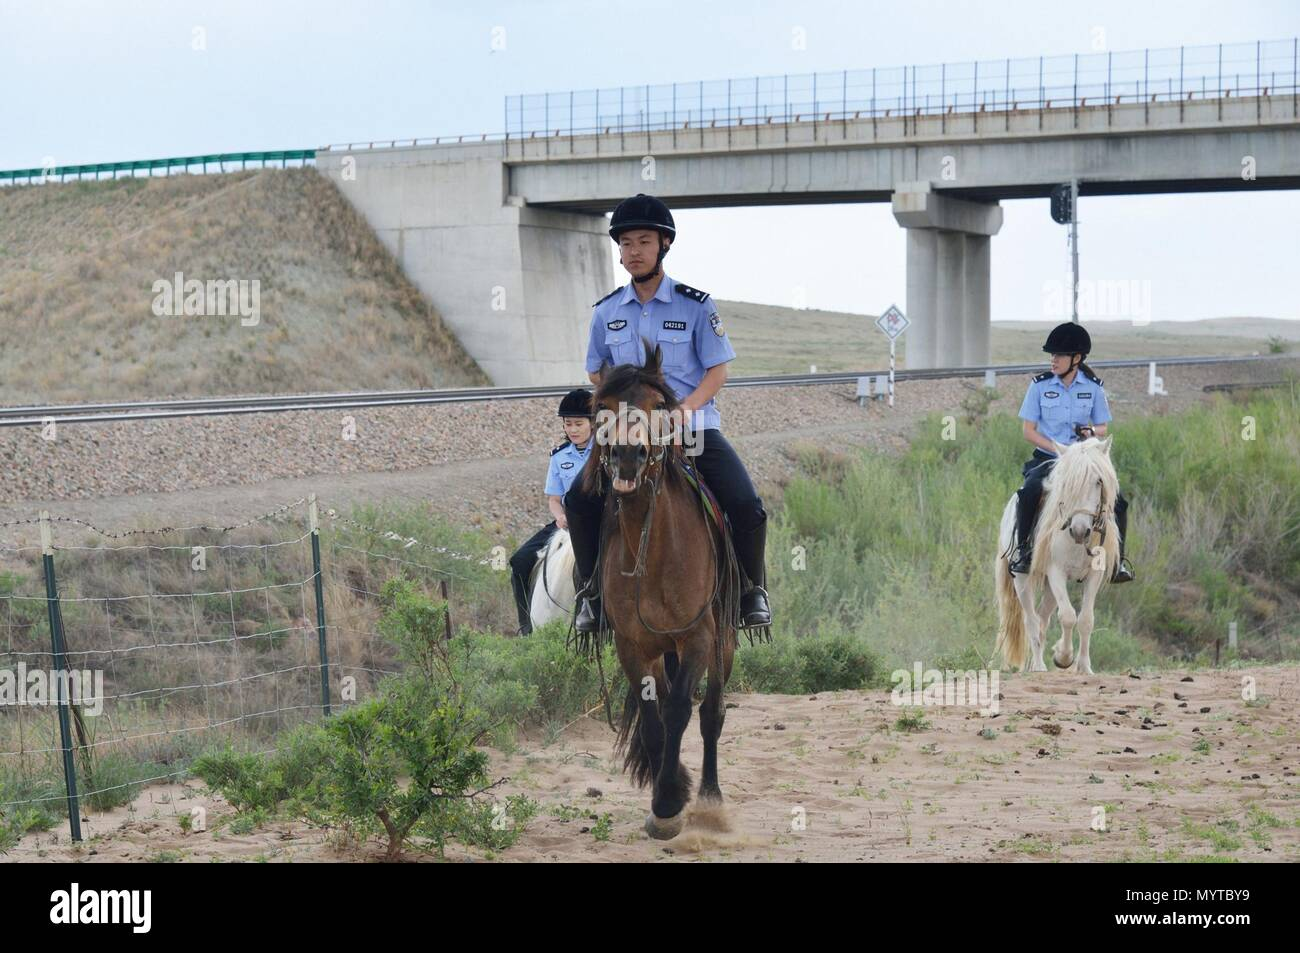 (180608) -- XILINHOT, June 8, 2018 (Xinhua) -- Mounted police patrol along railroad in Xilinhot, north China's Inner Mongolia Autonomous Region, June 7, 2018. In order to keep railroads in operation, mounted police in Xilinhot are busy repairing broken safety net and checking livestock intrusion while patrolling along railroads. (Xinhua/Zou Yu) (wyl) - Stock Image